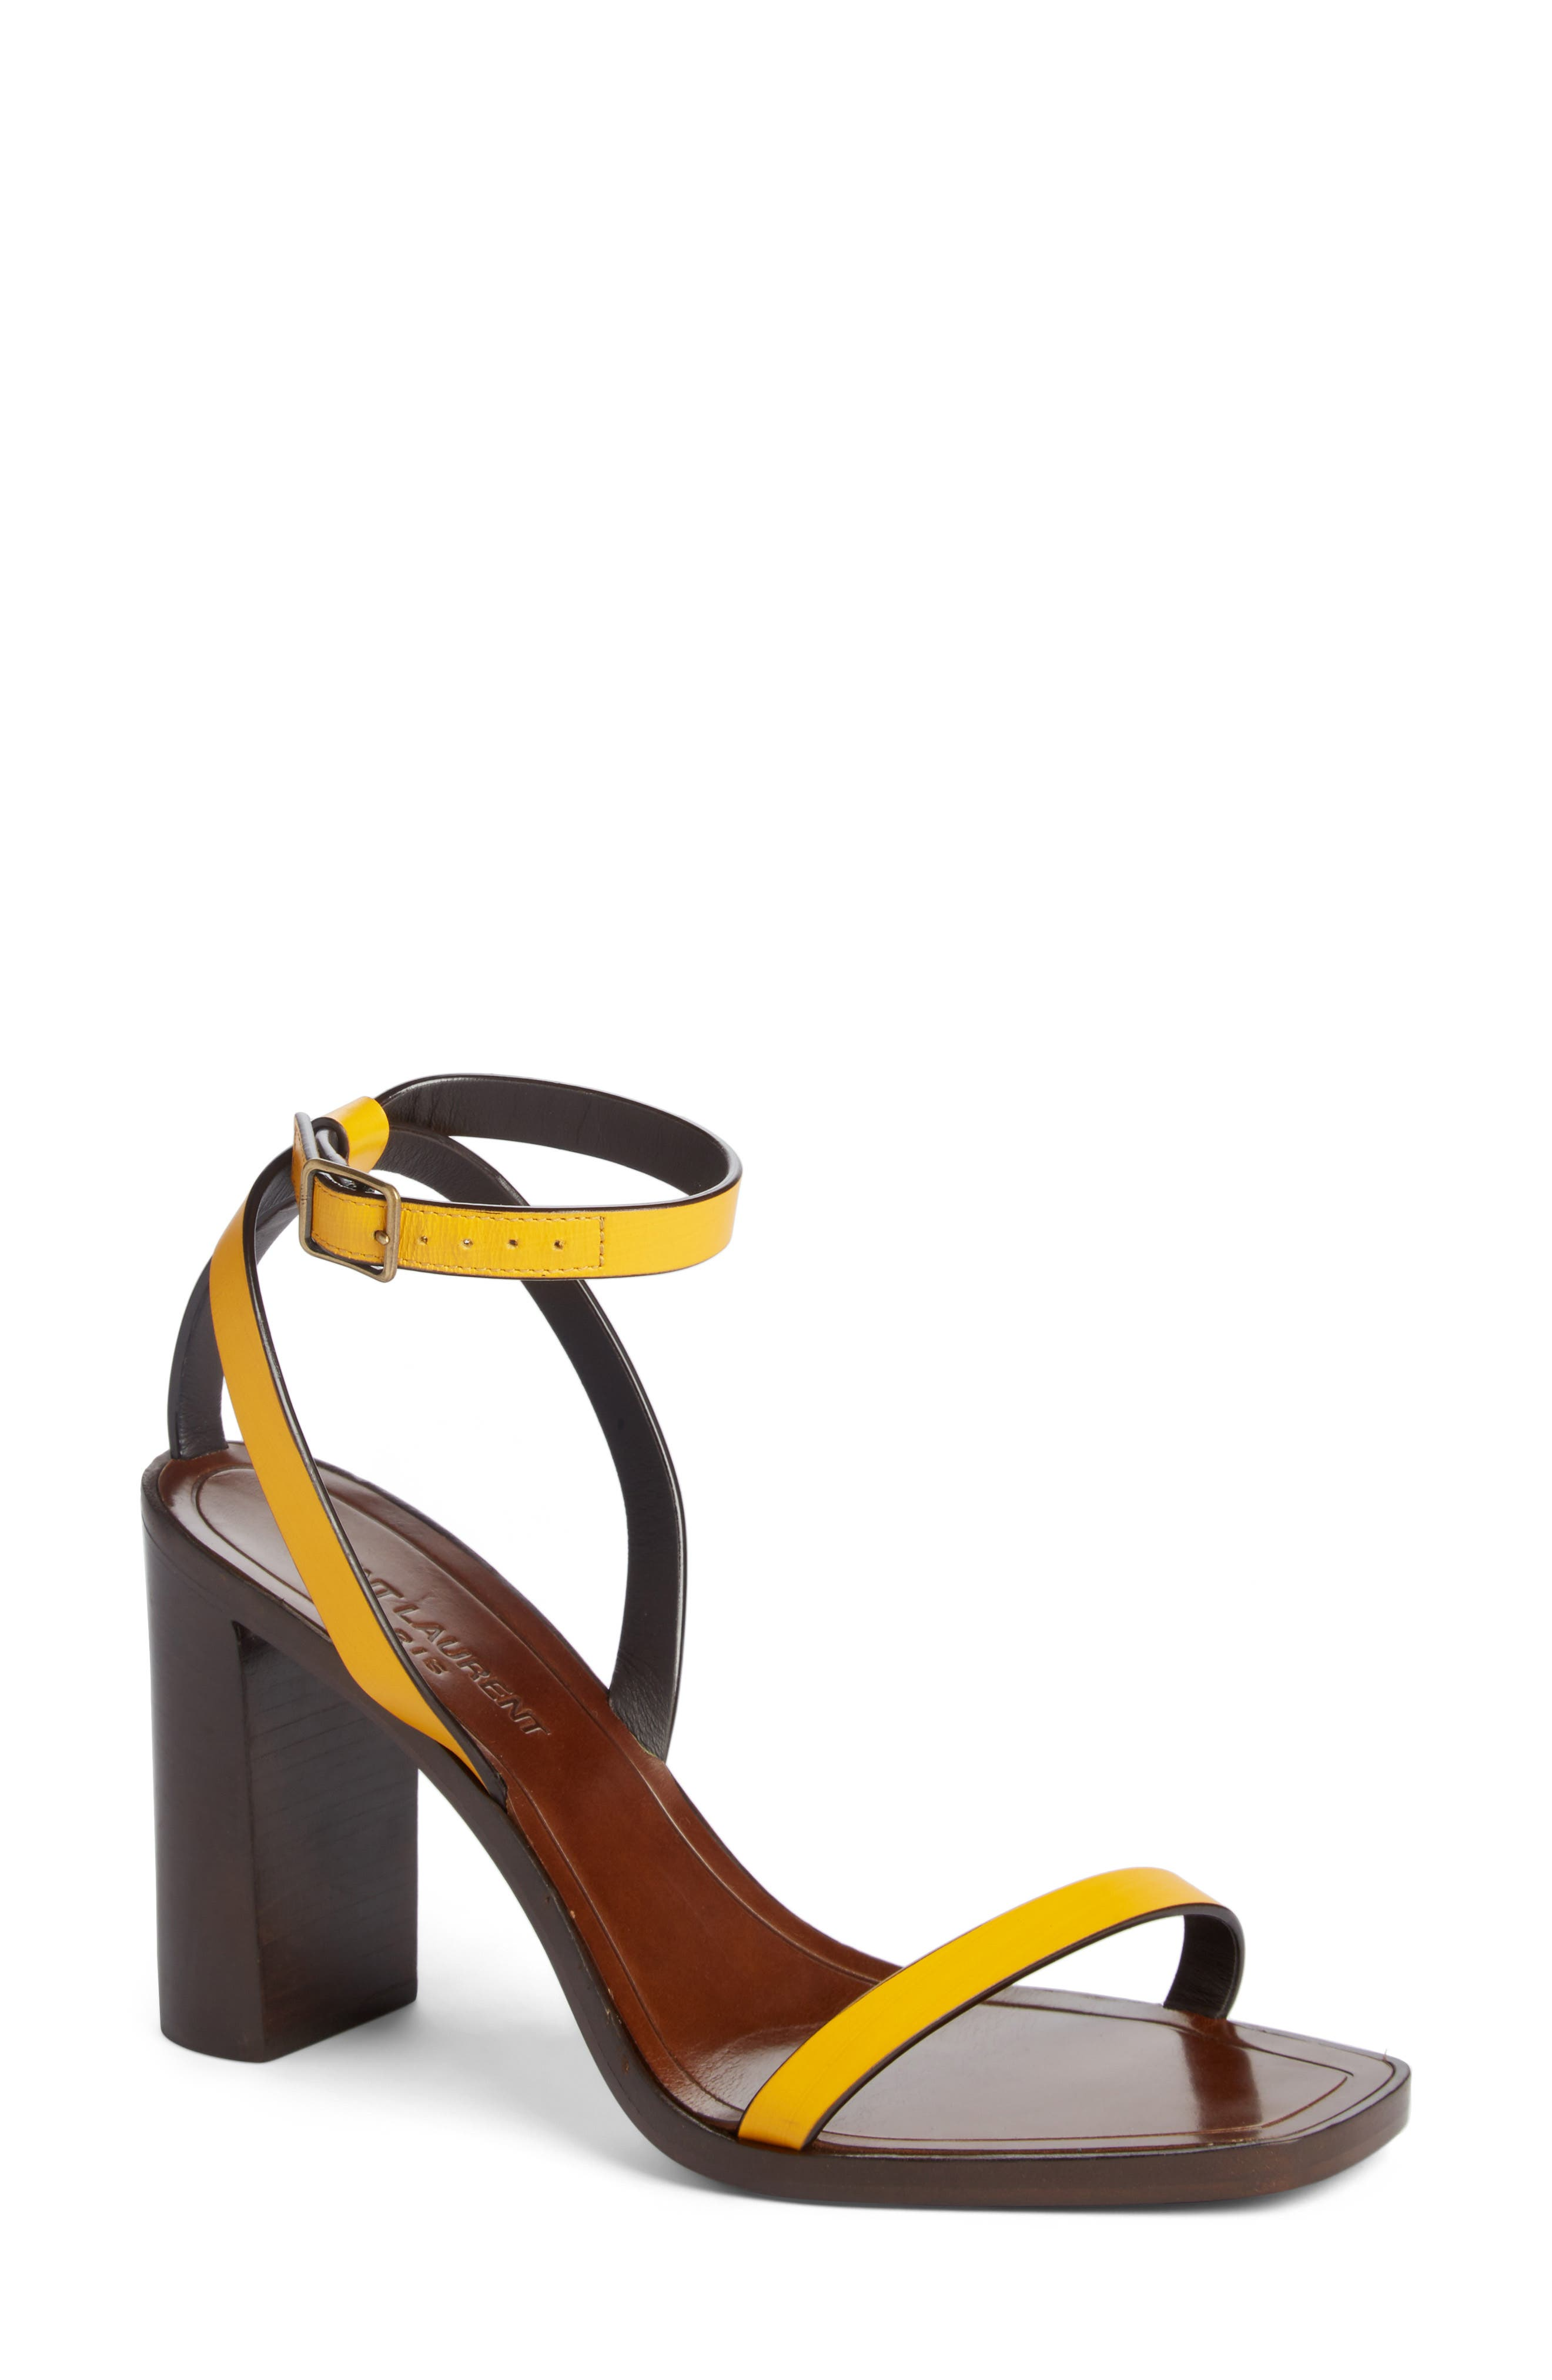 Loulou Ankle Strap Sandal,                         Main,                         color, BLACK/ YELLOW